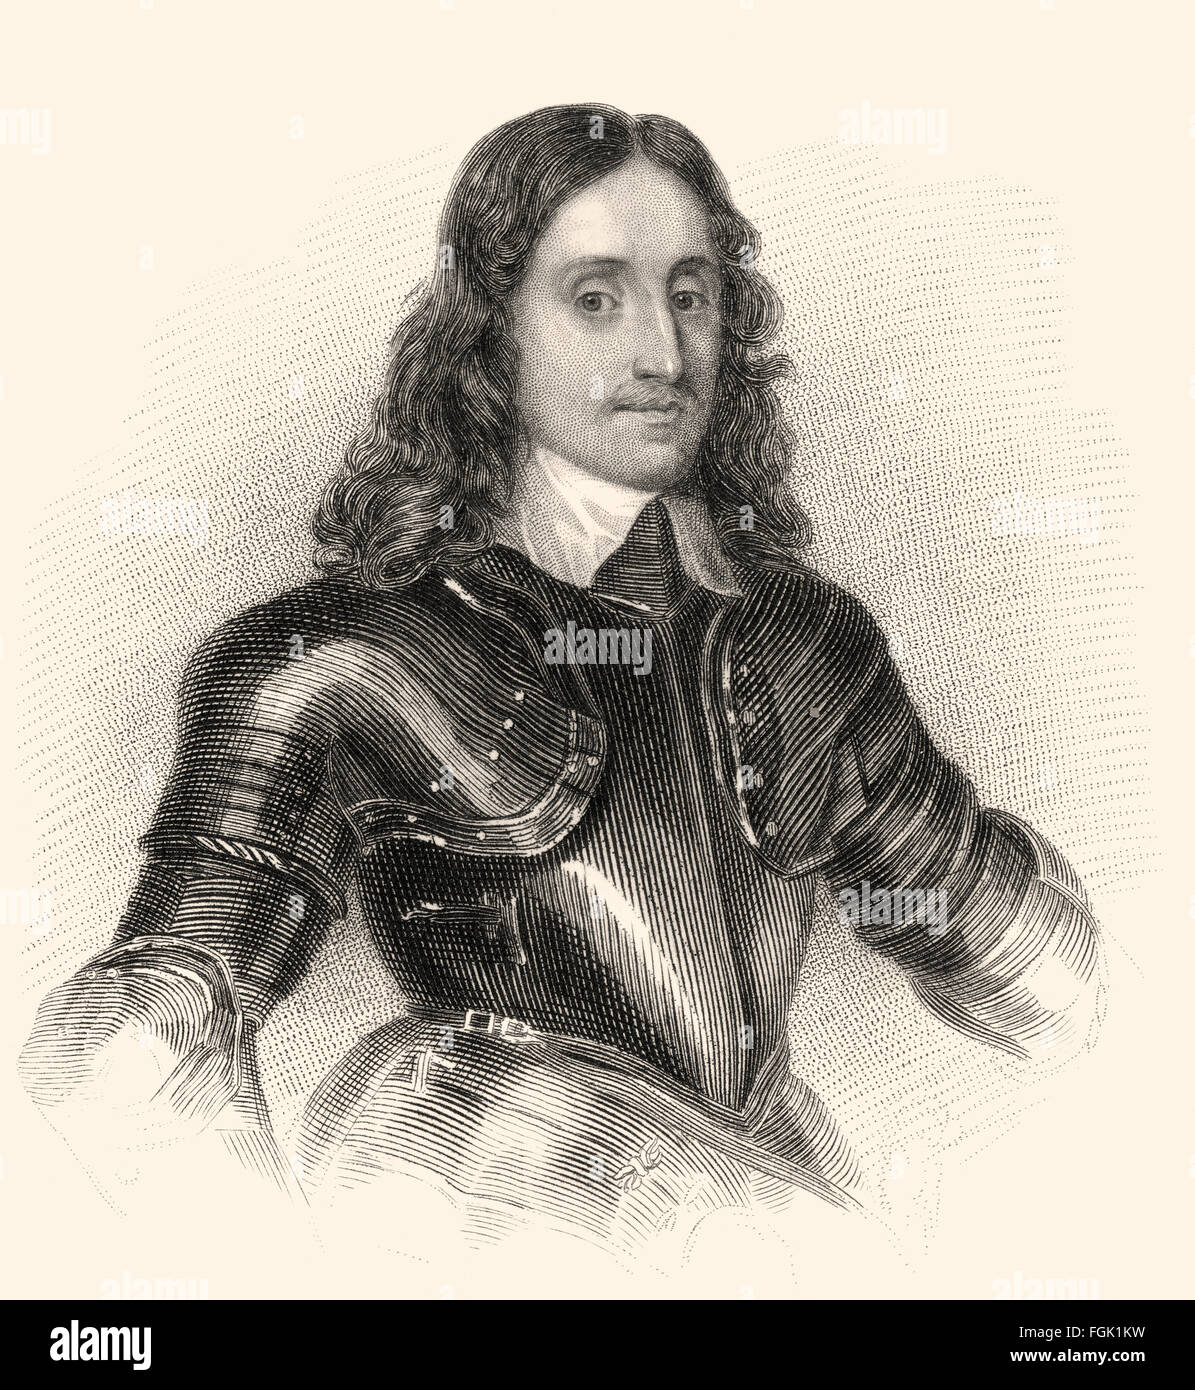 William Kerr, first Earl of Lothian of a new creation, 1605-1675, a Scottish nobleman - Stock Image